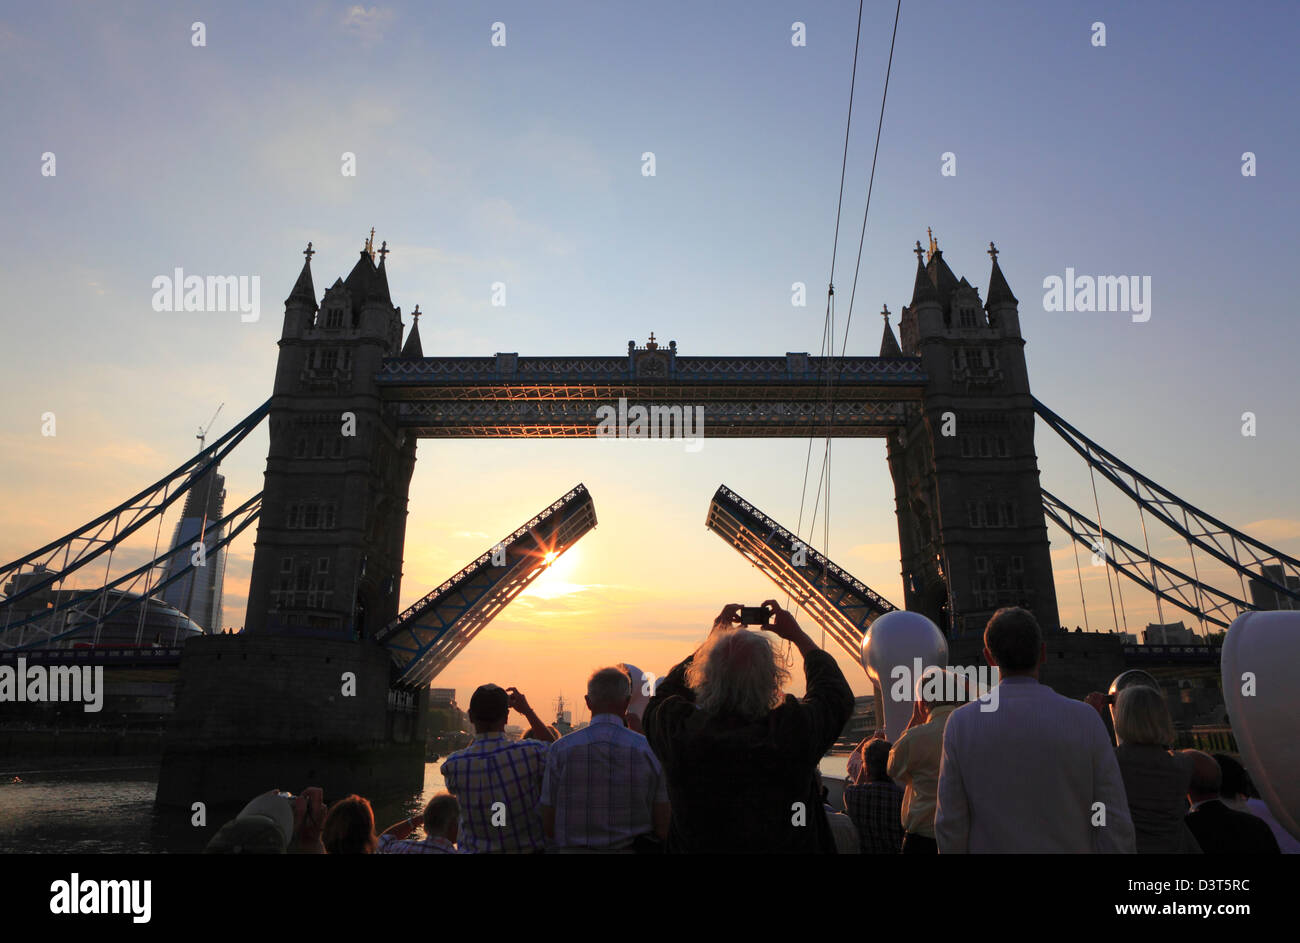 Tourists photographing Tower Bridge at sunset from a boat on the River Thames London England UK GB Taking a photo Stock Photo